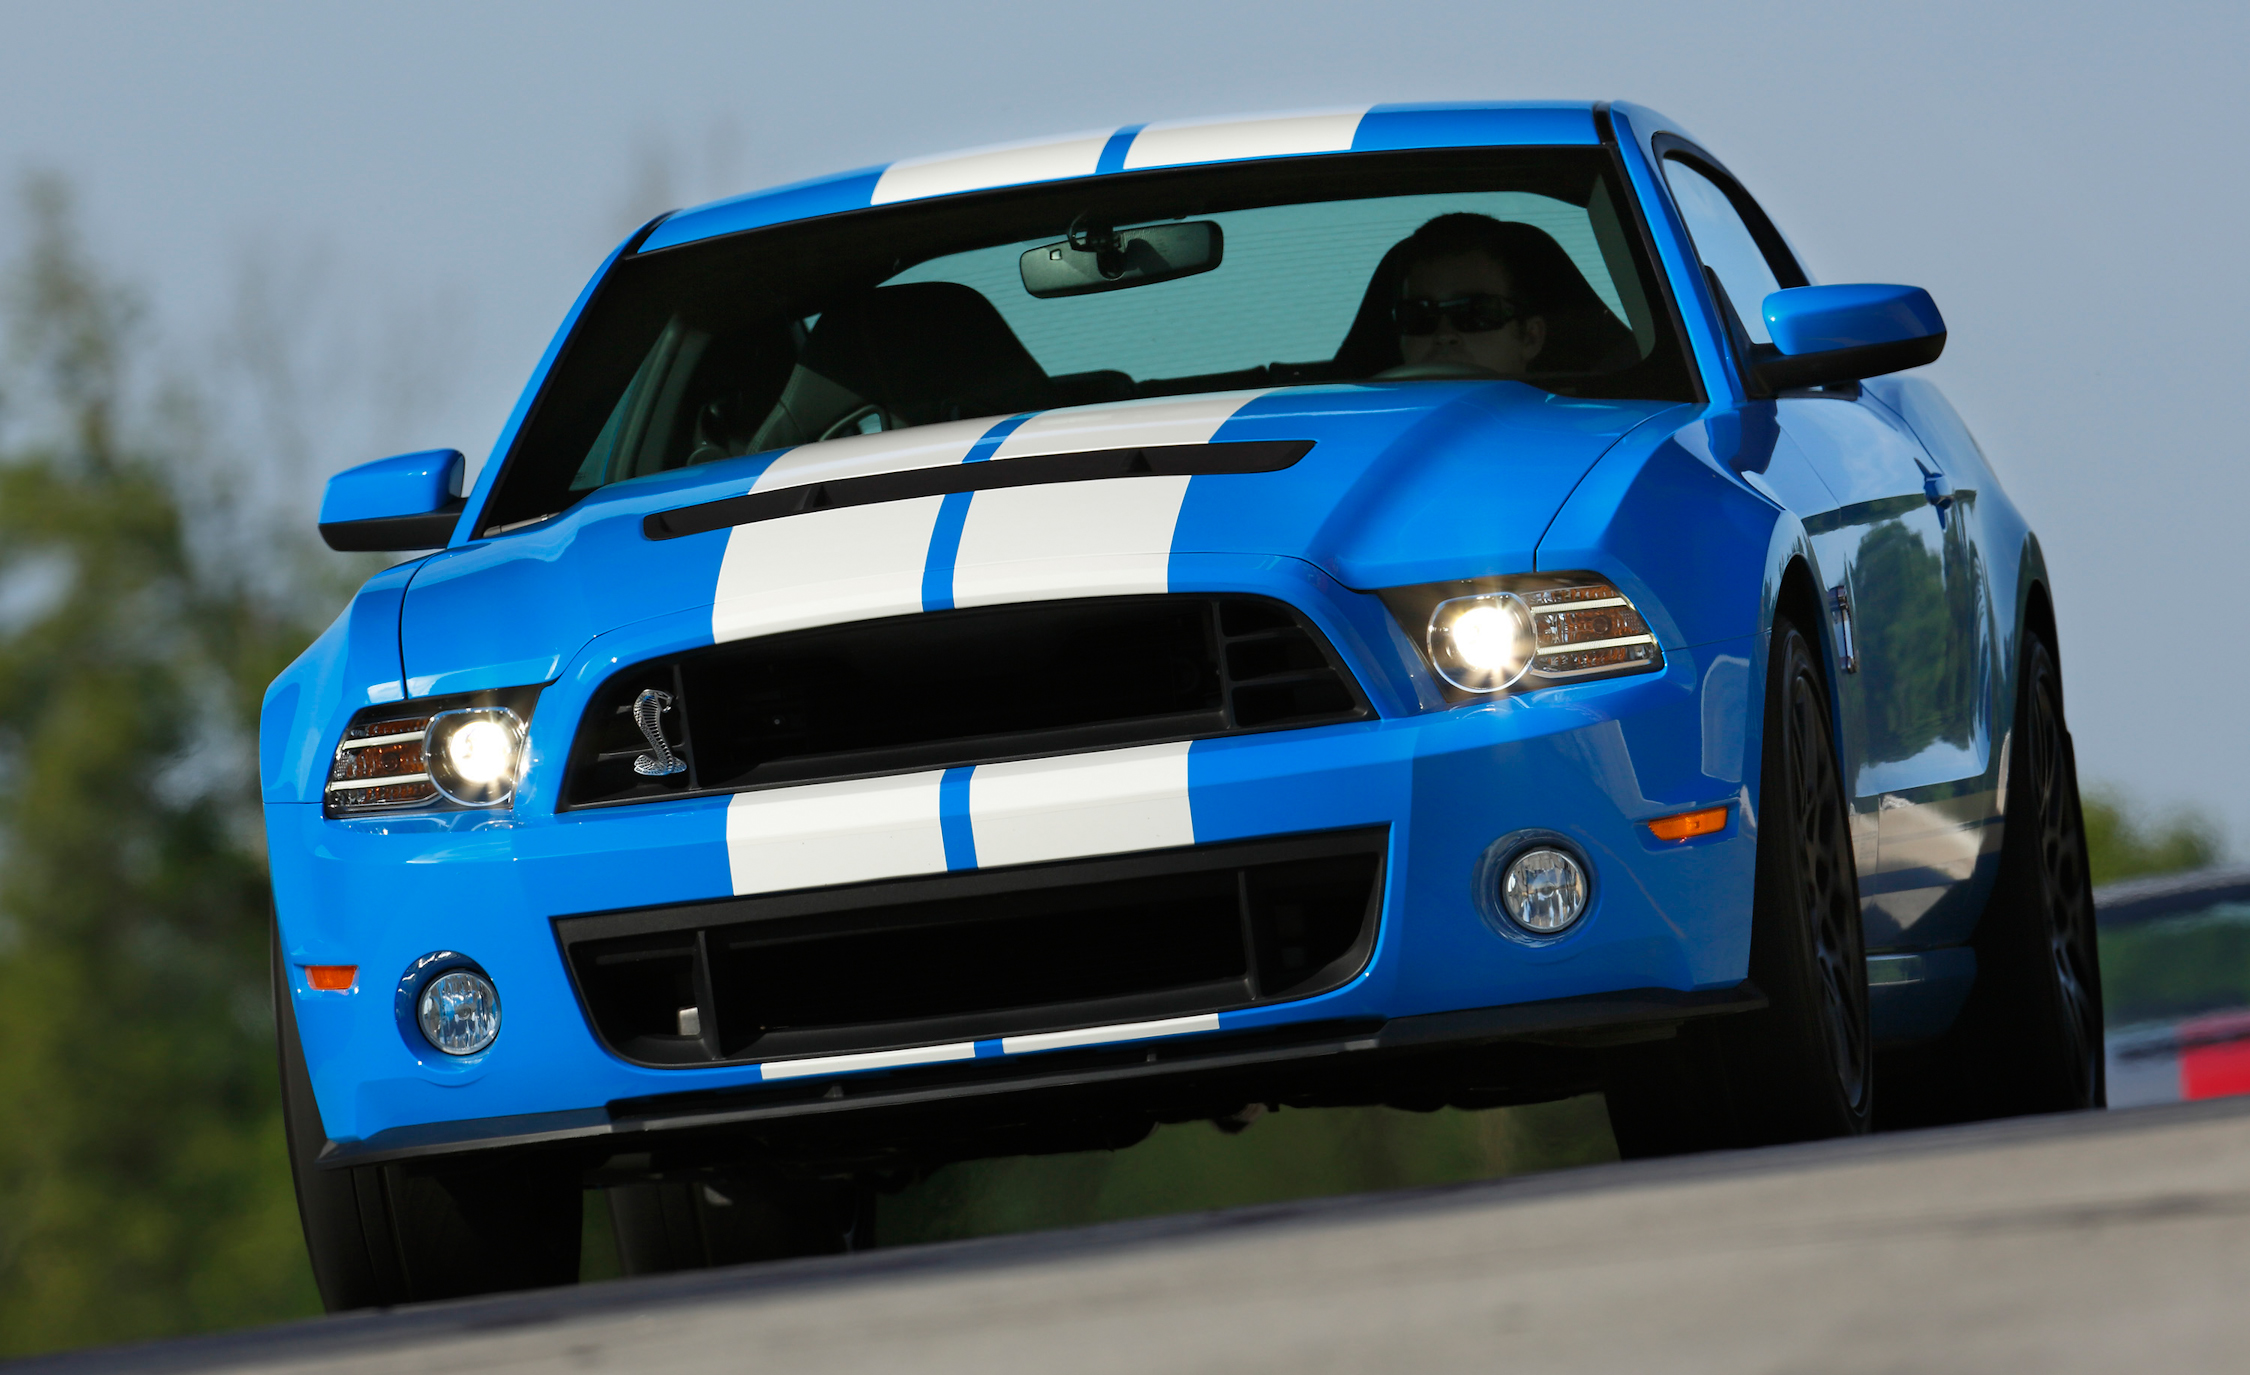 2013 Ford Mustang Shelby GT500 Blue Test Drive Front Profile (Photo 13 of 47)